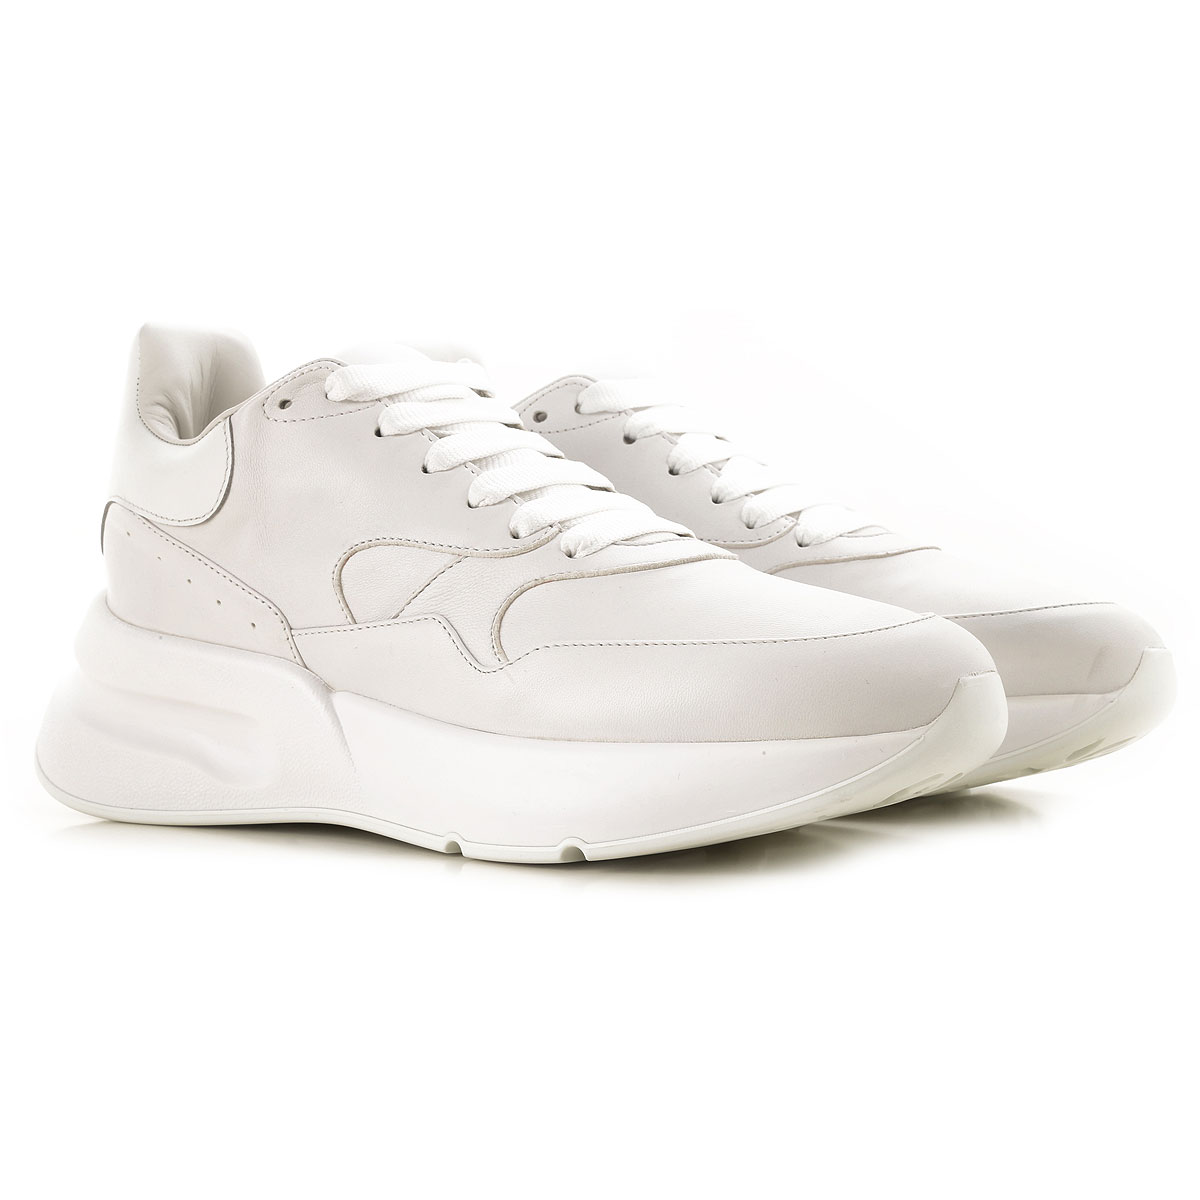 Alexander McQueen Sneakers for Men On Sale, White, Leather, 2017, EUR 44 - US 11 - UK 10 EUR 45 - US 12 - UK 11